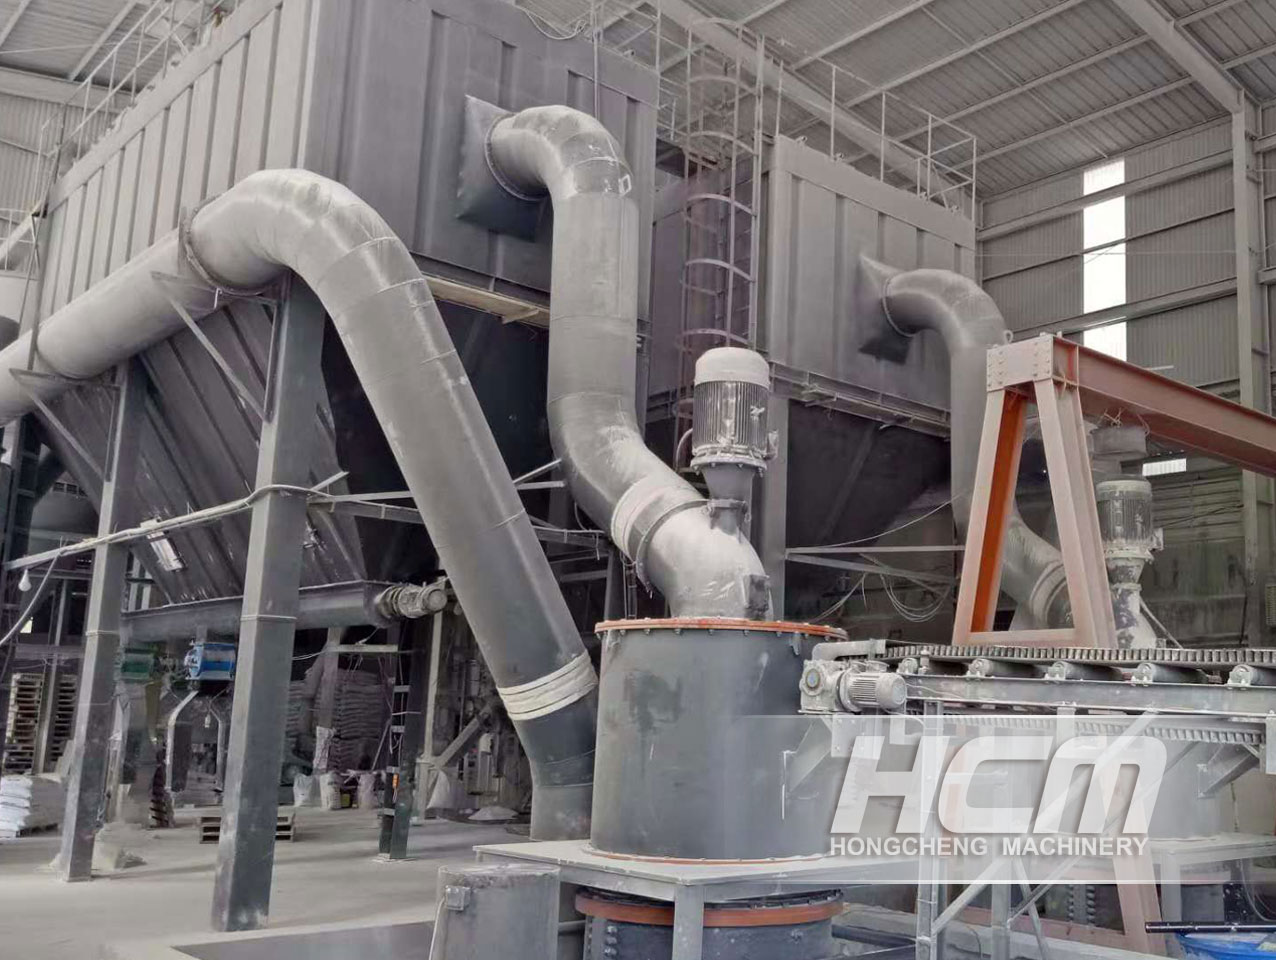 ULTRAFINE GRINDER RAW VERTICAL TURBINE TYPE GRINDING MILL FACTORY